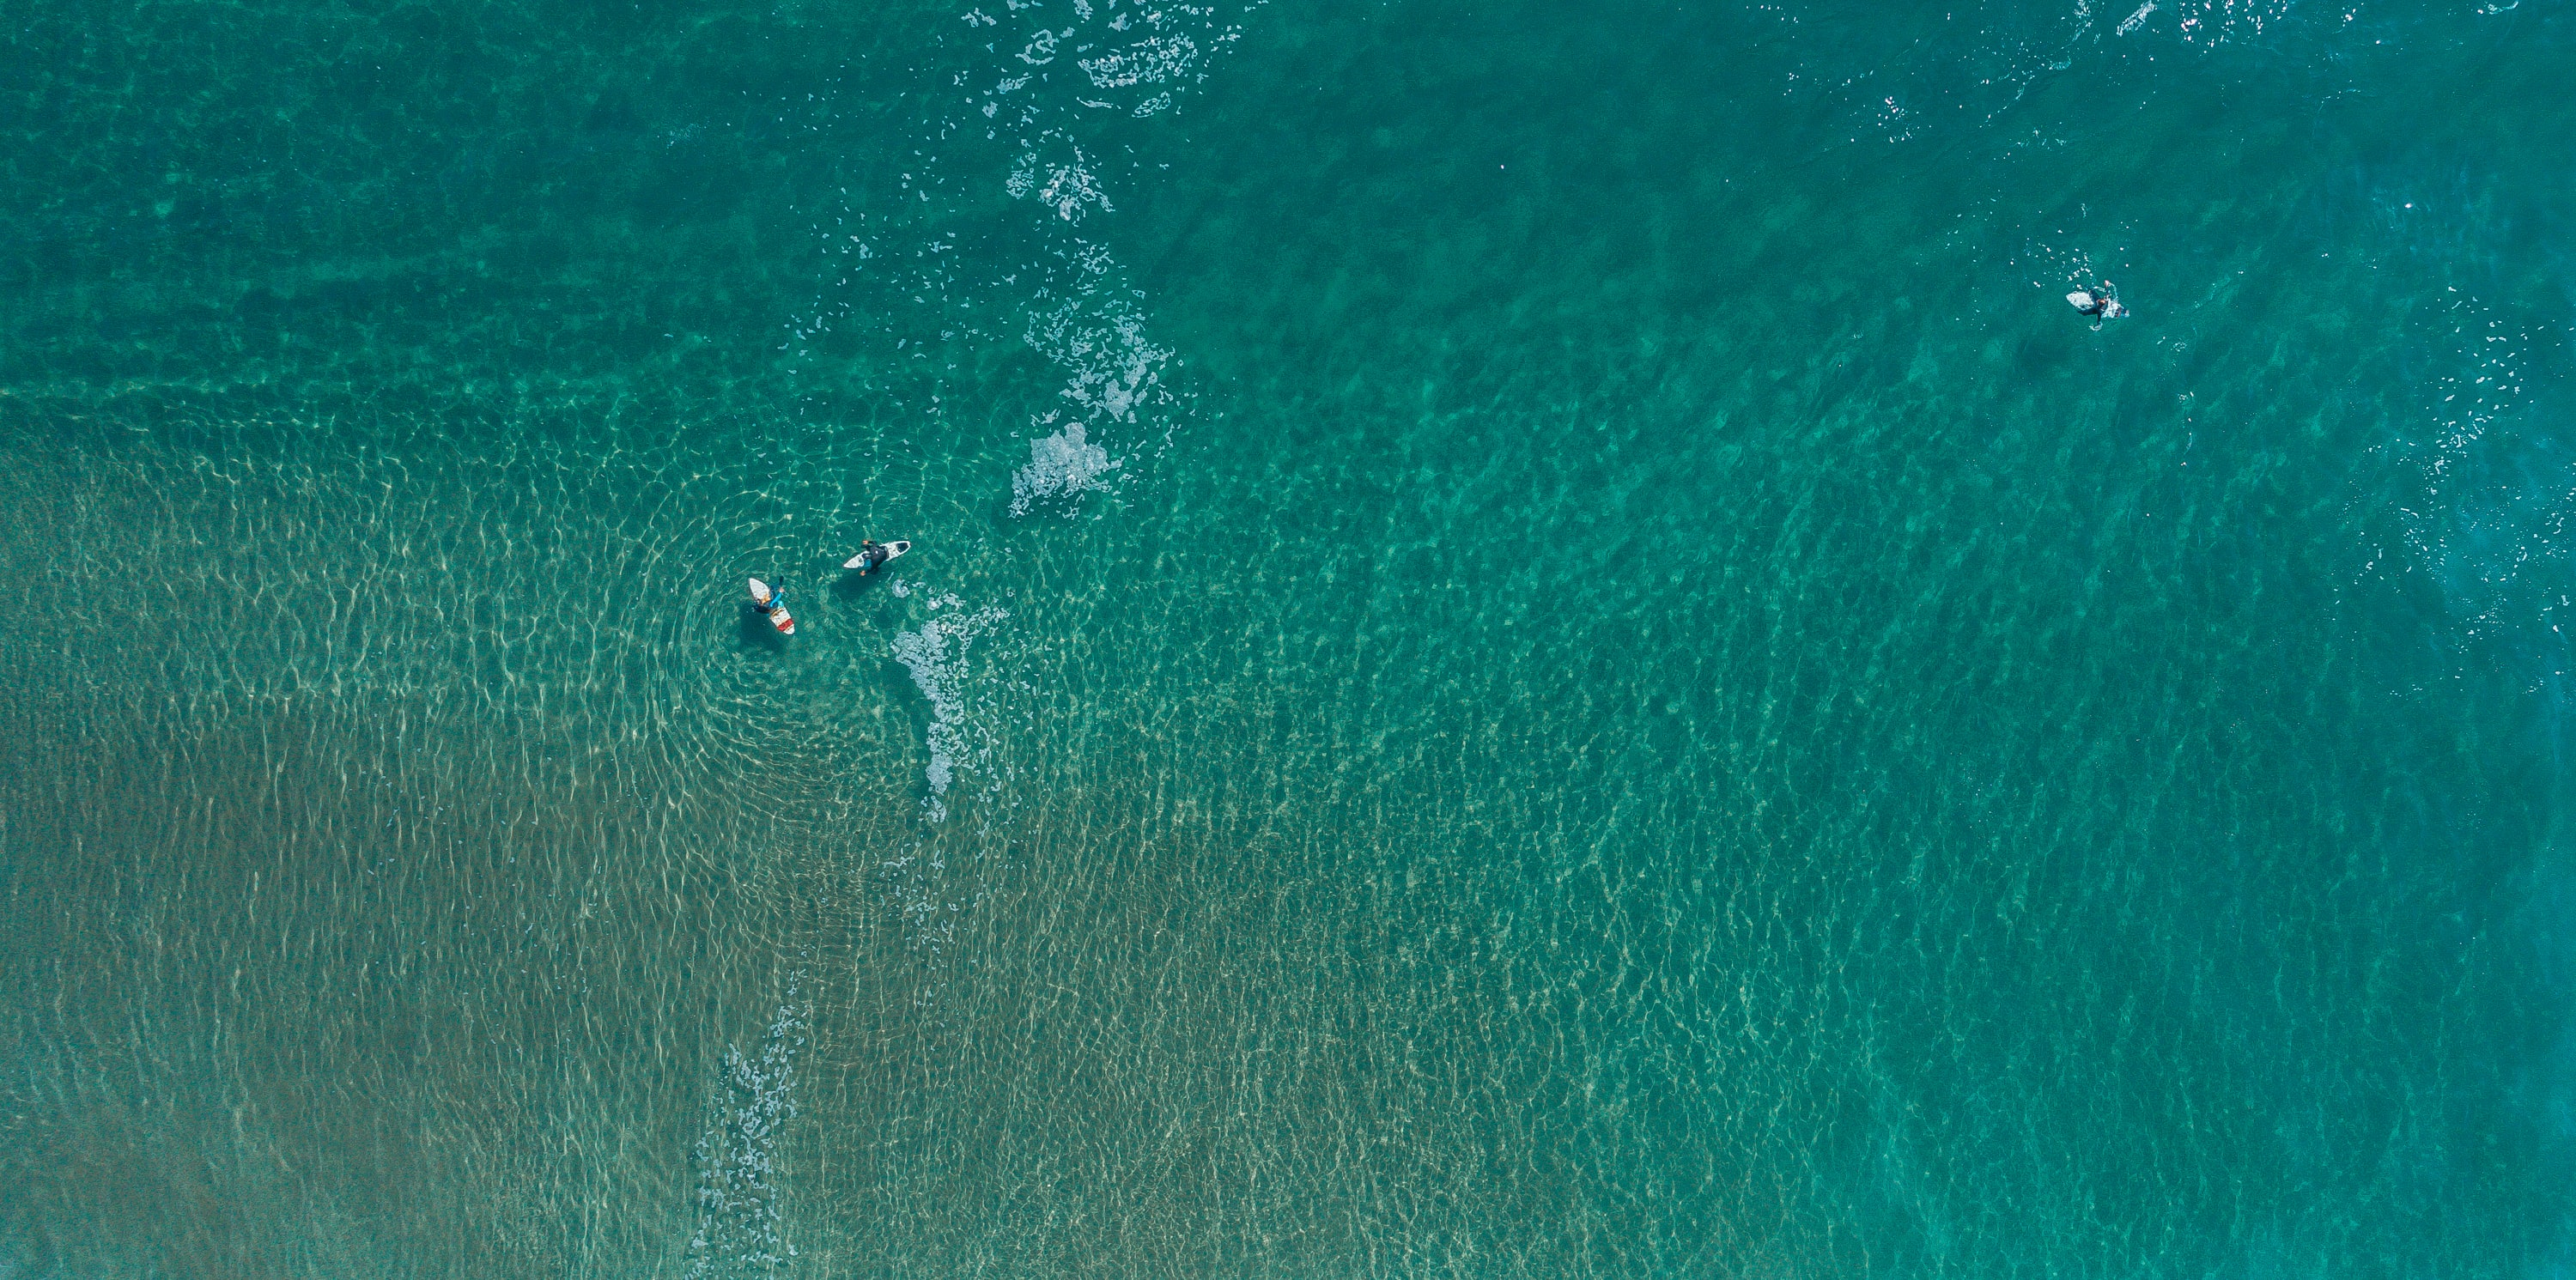 two person surfing on ocean aerial photography